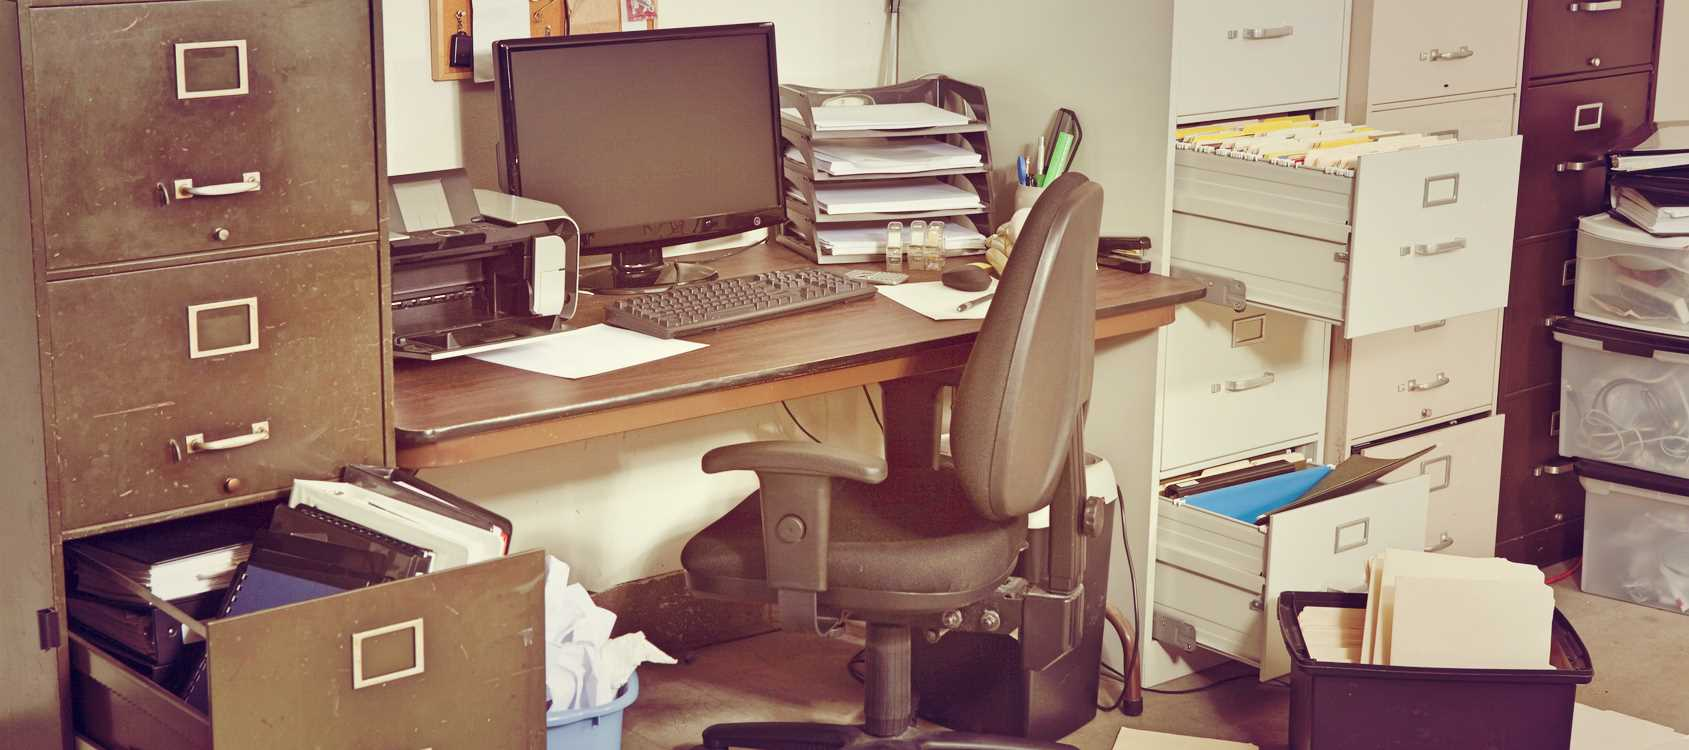 Office Clean Out-Lexington Dumpster Rental & Junk Removal Services-We Offer Residential and Commercial Dumpster Removal Services, Portable Toilet Services, Dumpster Rentals, Bulk Trash, Demolition Removal, Junk Hauling, Rubbish Removal, Waste Containers, Debris Removal, 20 & 30 Yard Container Rentals, and much more!